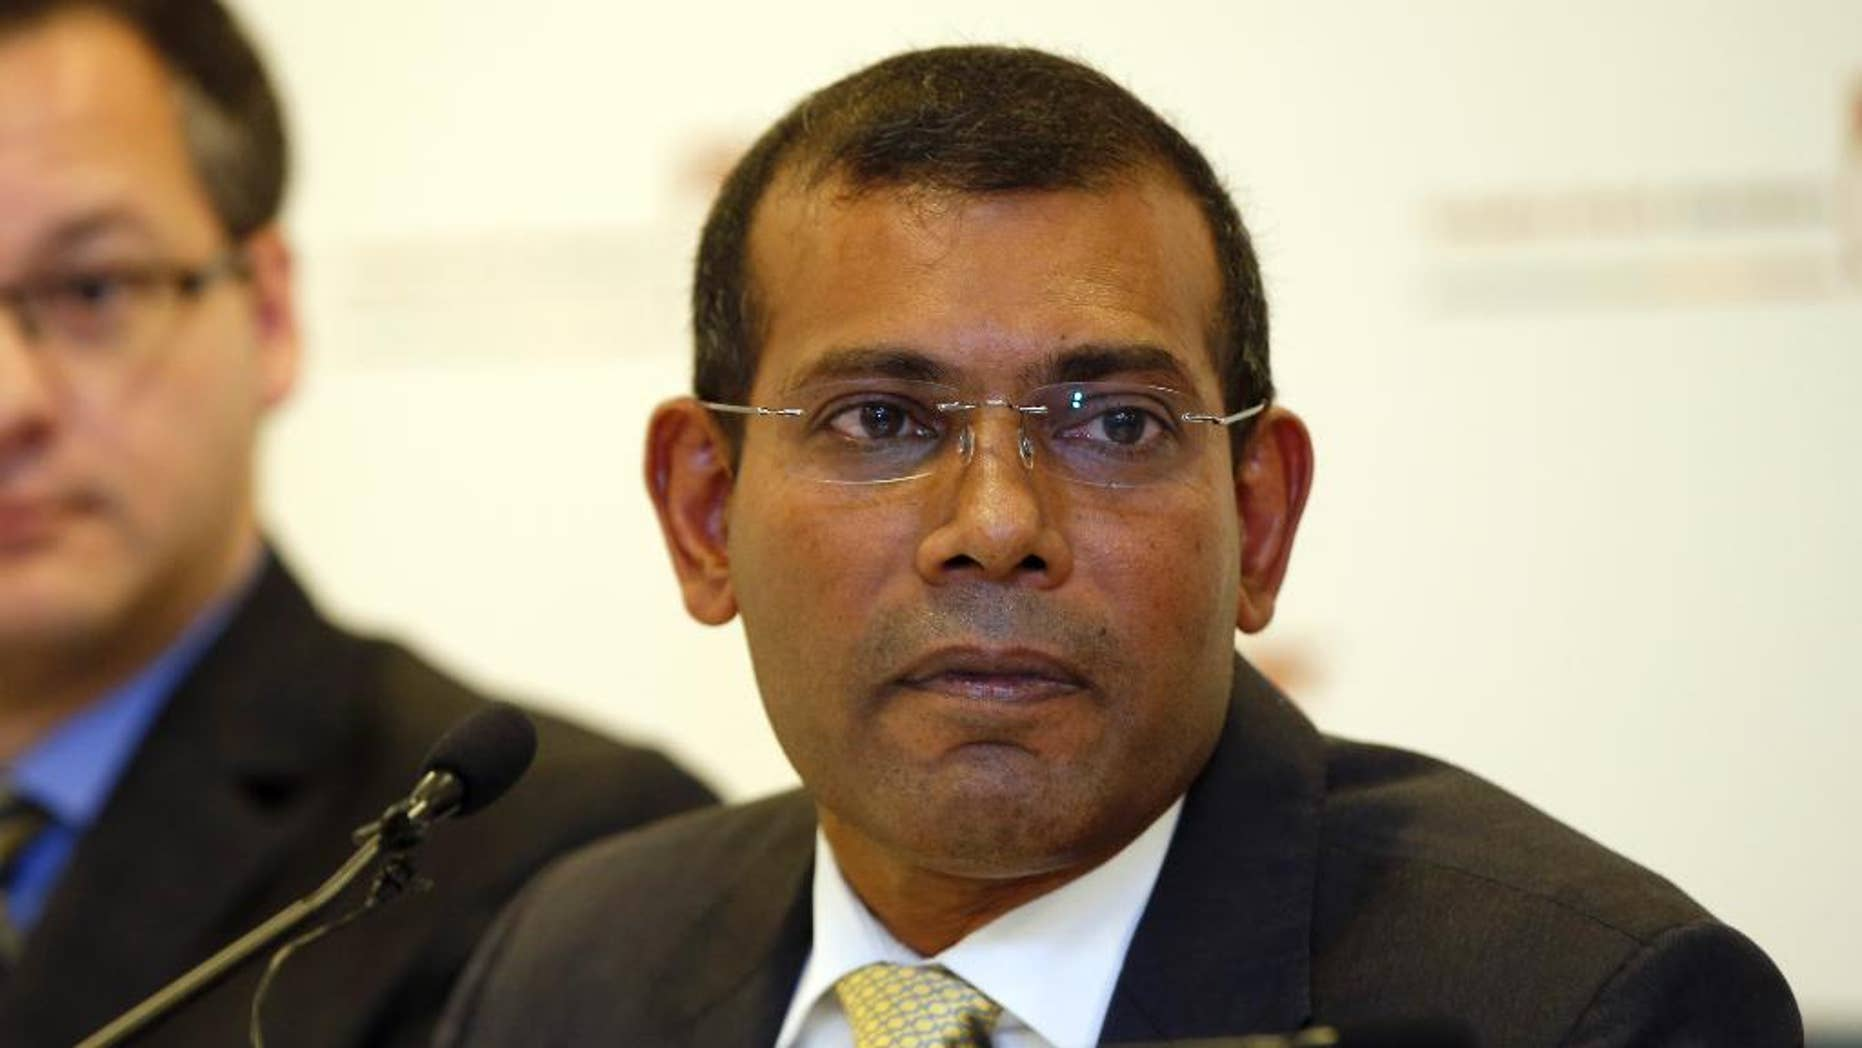 FILE - In a Jan. 25, 2016 file photo, former Maldives president Mohamed Nasheed listens to a question during a press conference in London. The former president of the Maldives said Monday, May 23, 2016, that he's been granted political asylum in Britain where he had traveled for medical treatment on leave from serving a prison sentence in his country. Nasheed, who was the Indian Ocean archipelago's first democratically elected leader, was sentenced to 13 years in prison last year for ordering the arrest of a senior judge while in office.  (AP Photo/Alastair Grant, File)